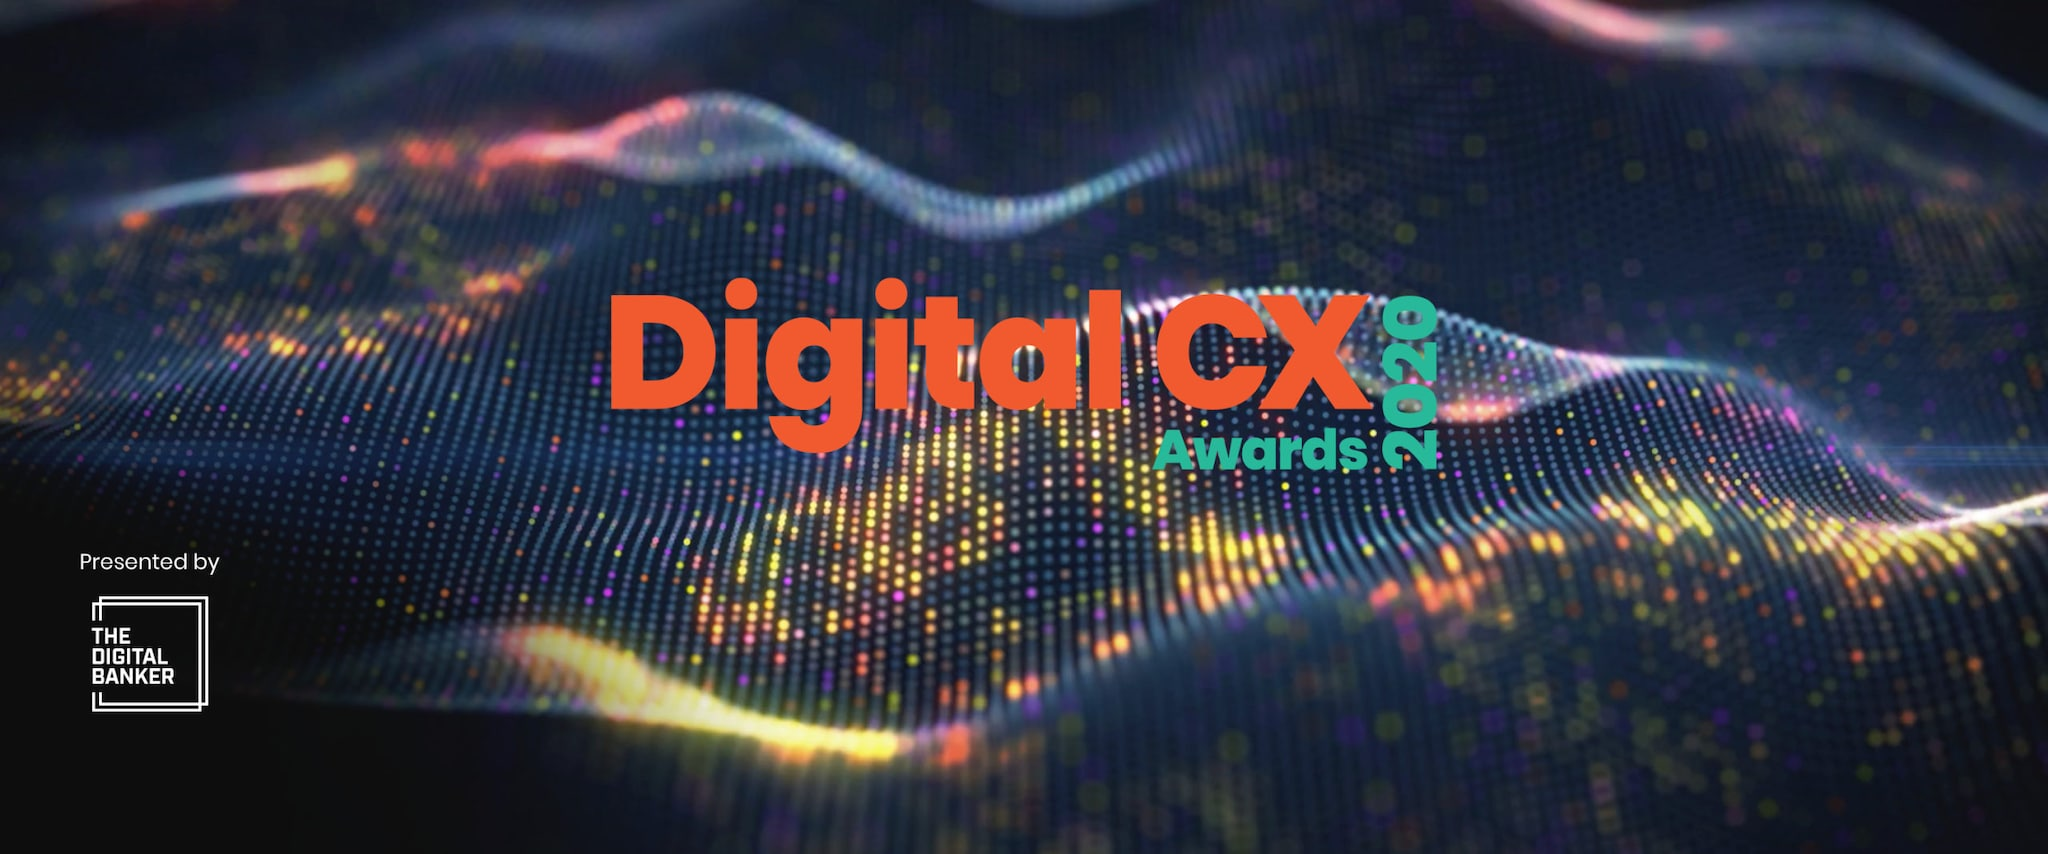 Digital CX awards 2020